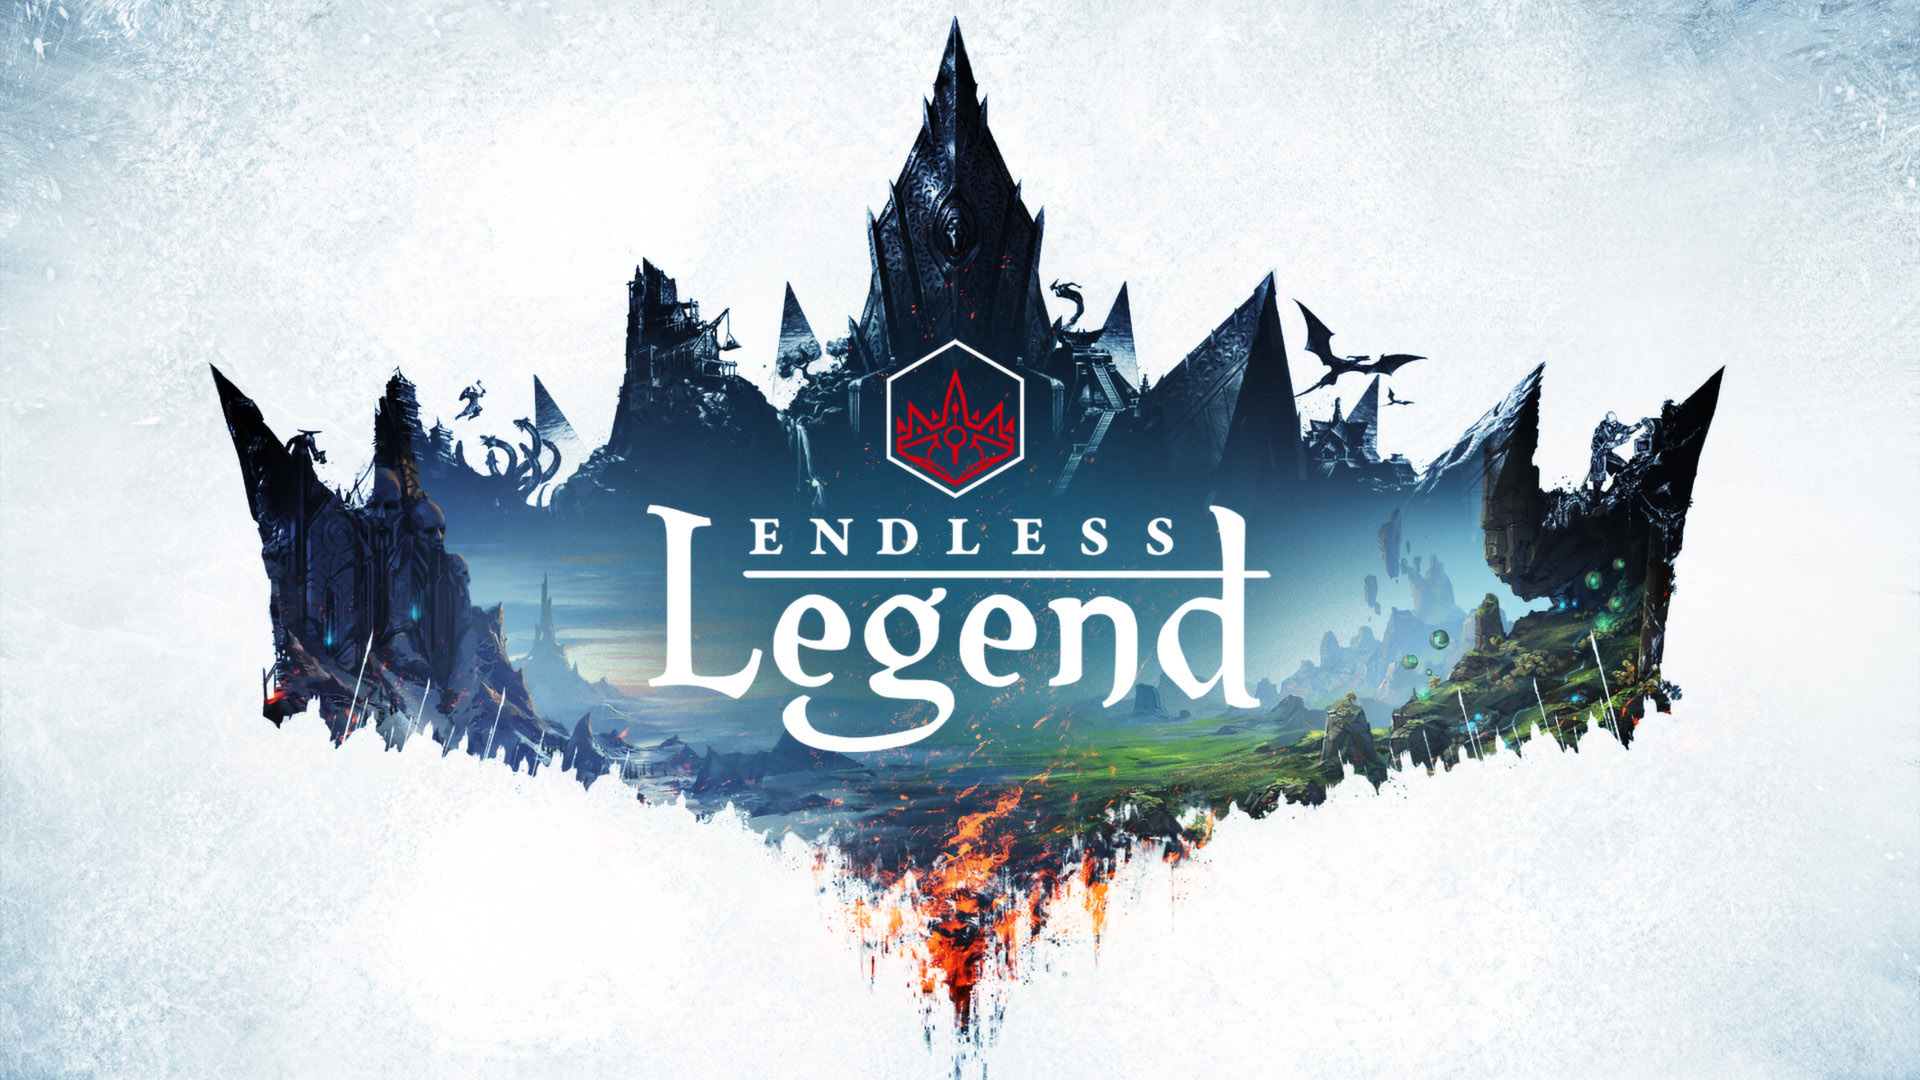 Endless Legend - Classic Pack (Steam Gift RU) + Gift!